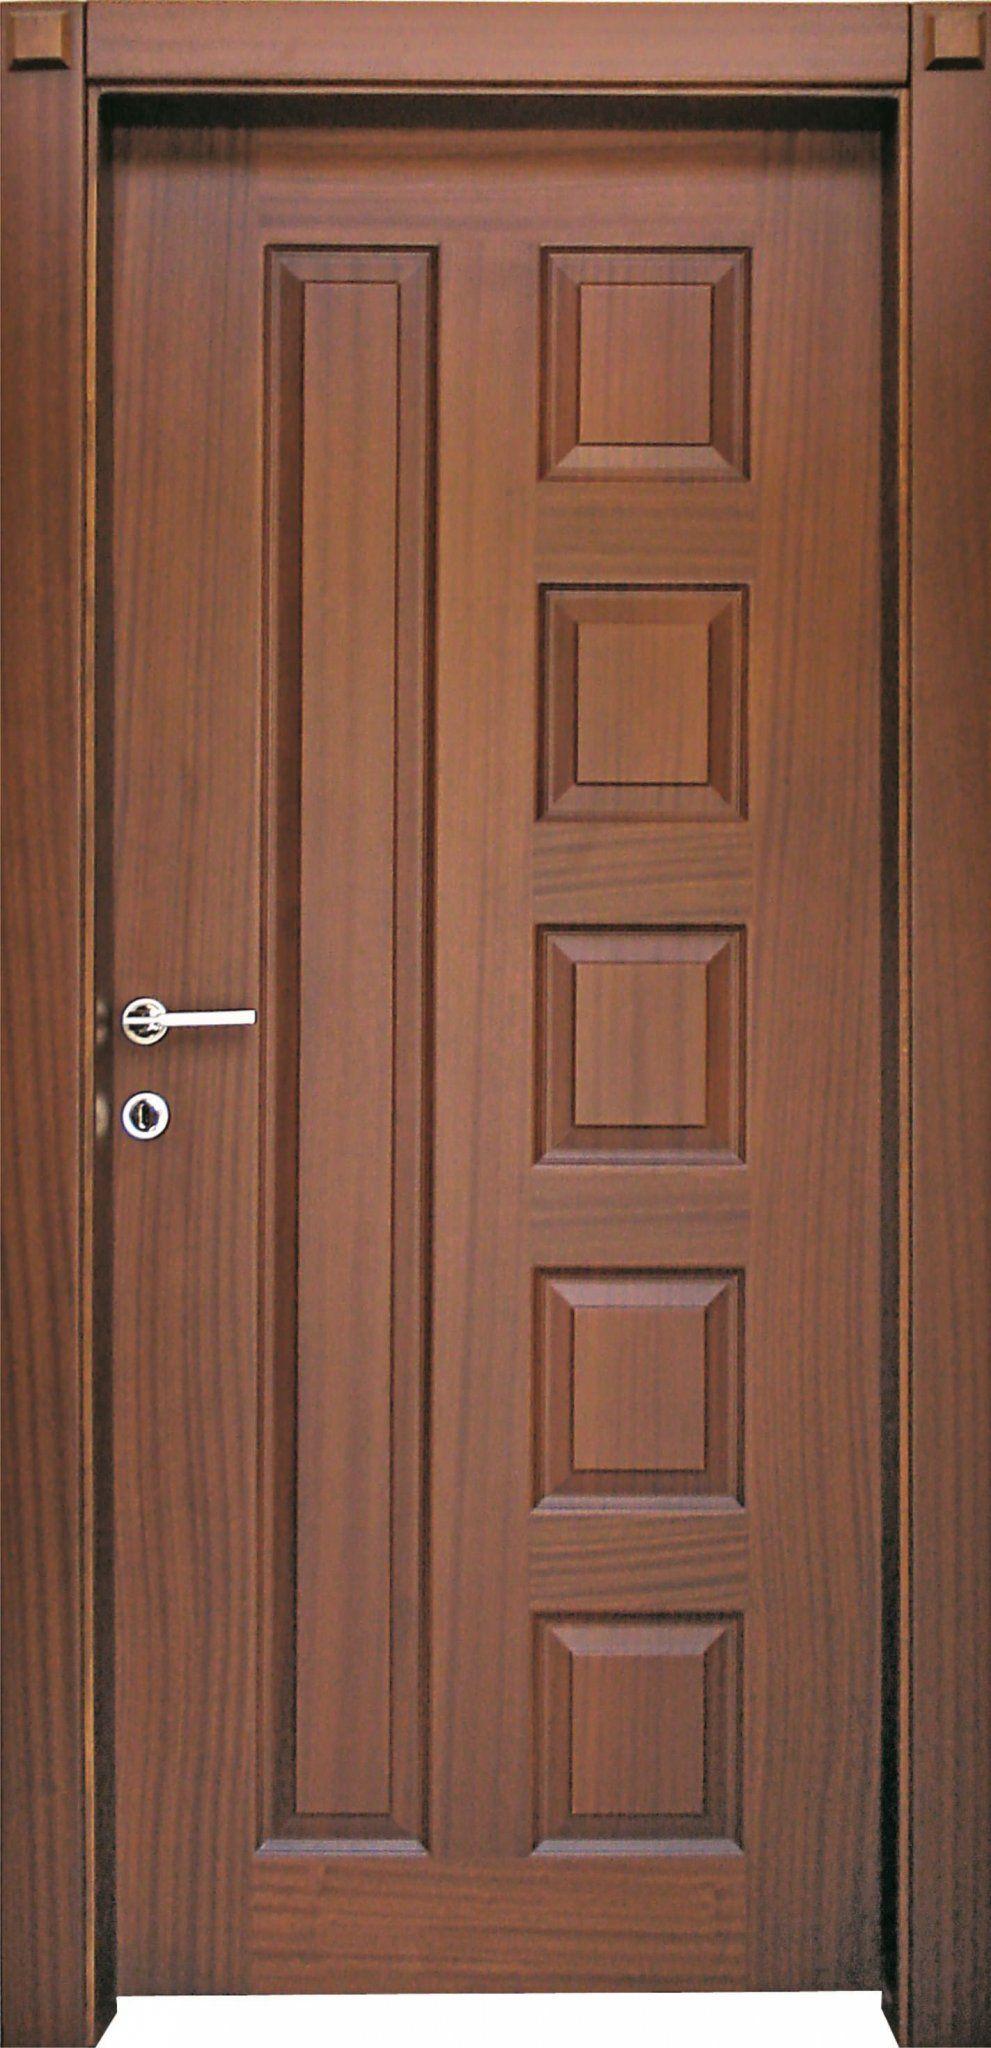 Top 50 Modern Wooden Door Design Ideas You Want To Choose Them For Your Home Engineering Discov Door Design Wood Modern Wooden Doors Wooden Front Door Design